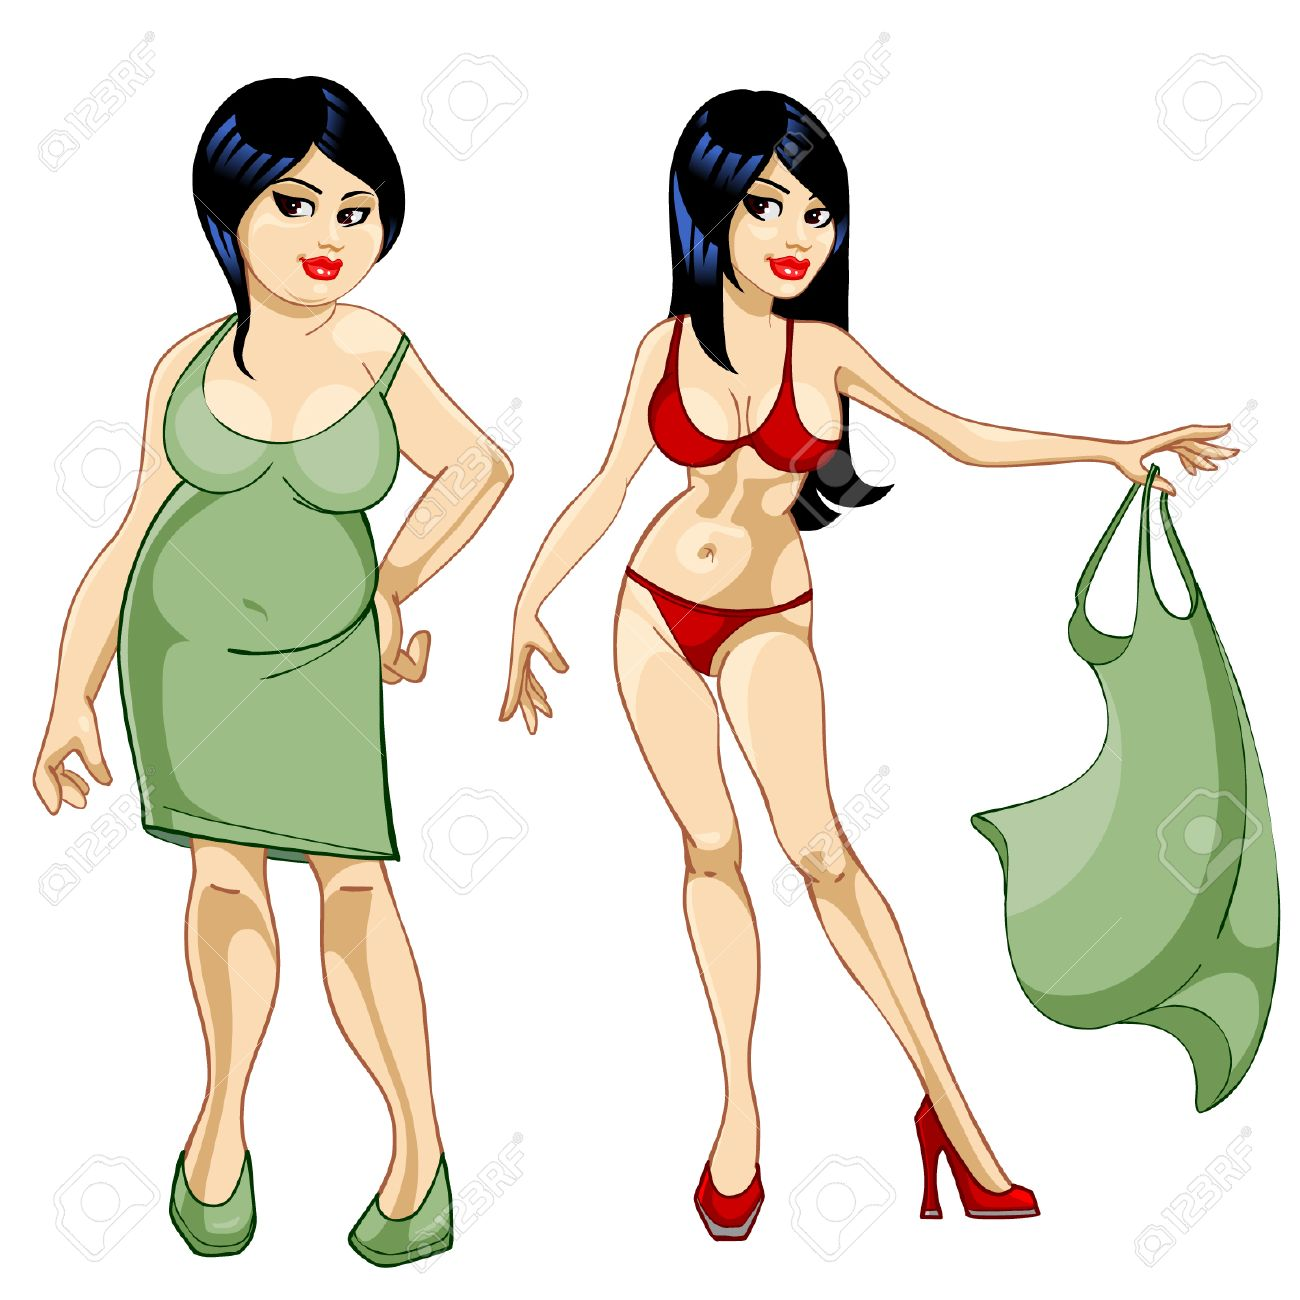 thick girl in a dress and a thin girl in a bathing suit royalty free